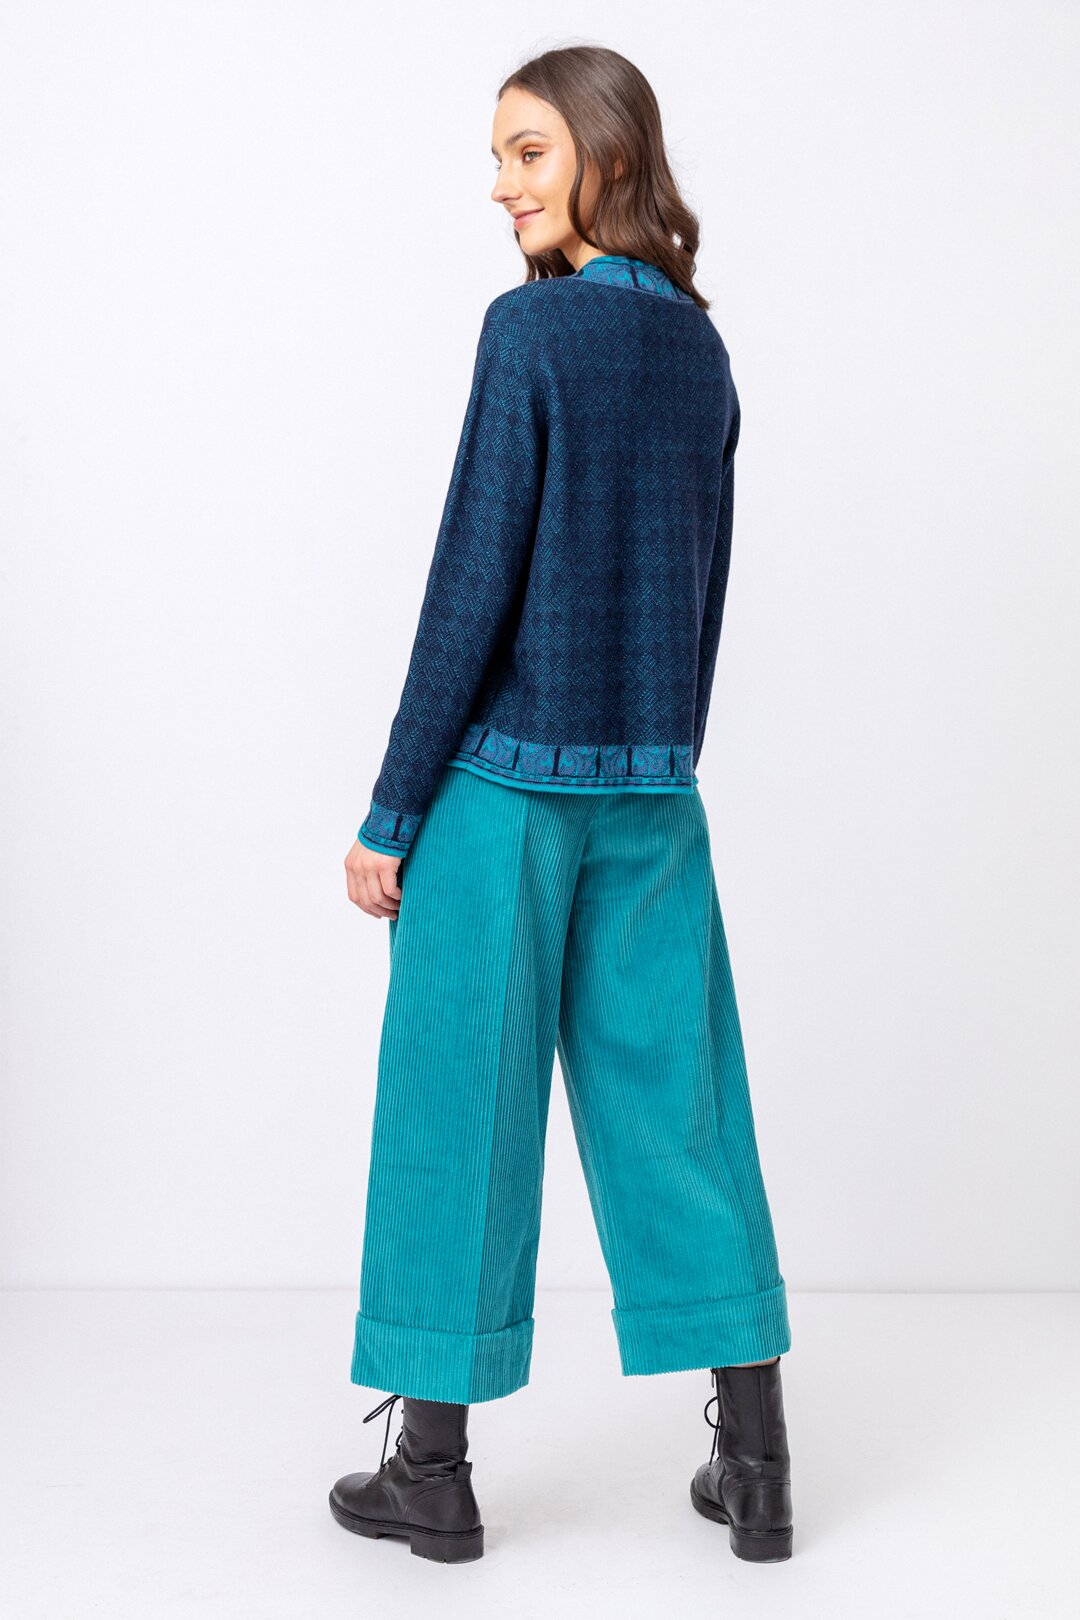 outfit-7c8a0920